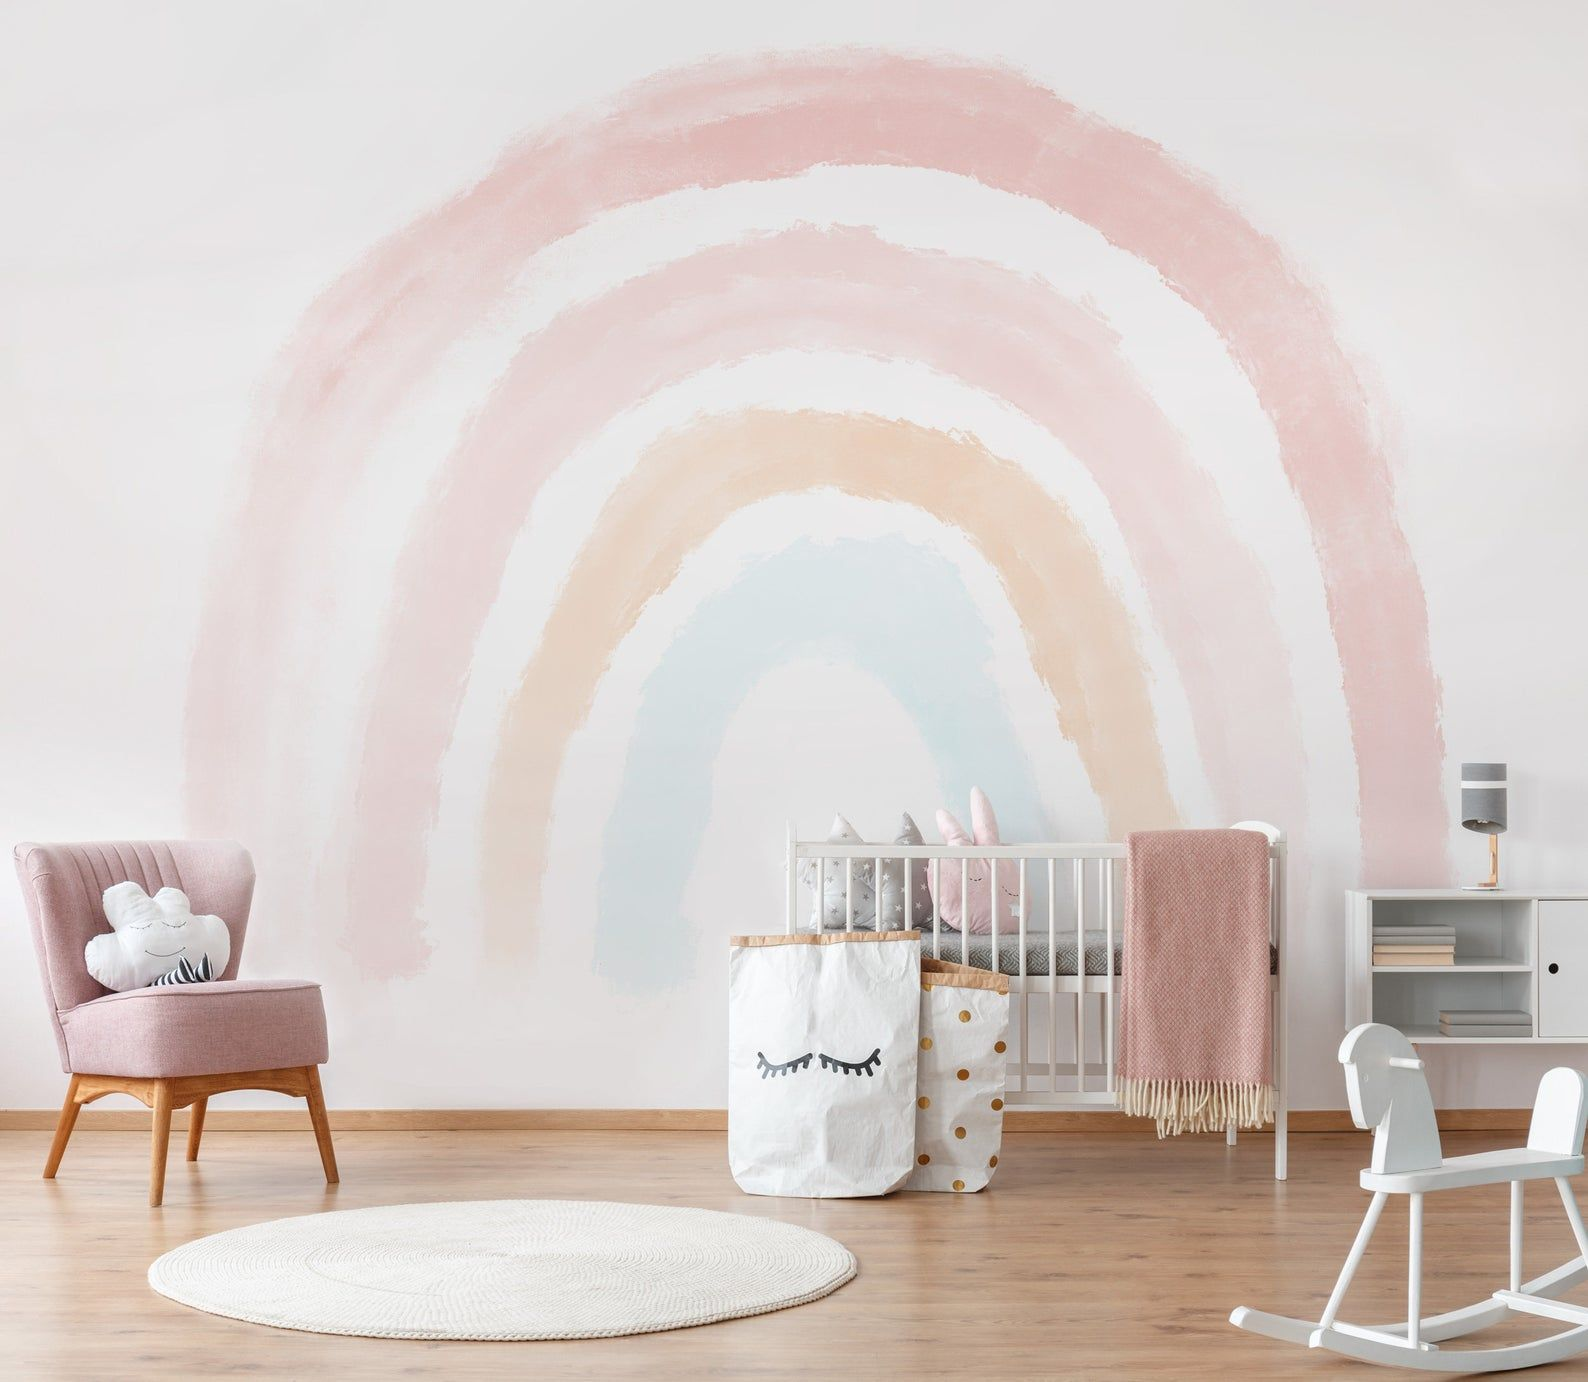 Boho Coral Peach Pink Rainbow Removable Wallpaper Pastel Etsy In 2021 Rainbow Wall Decal Rainbow Wallpaper Rainbow Wall